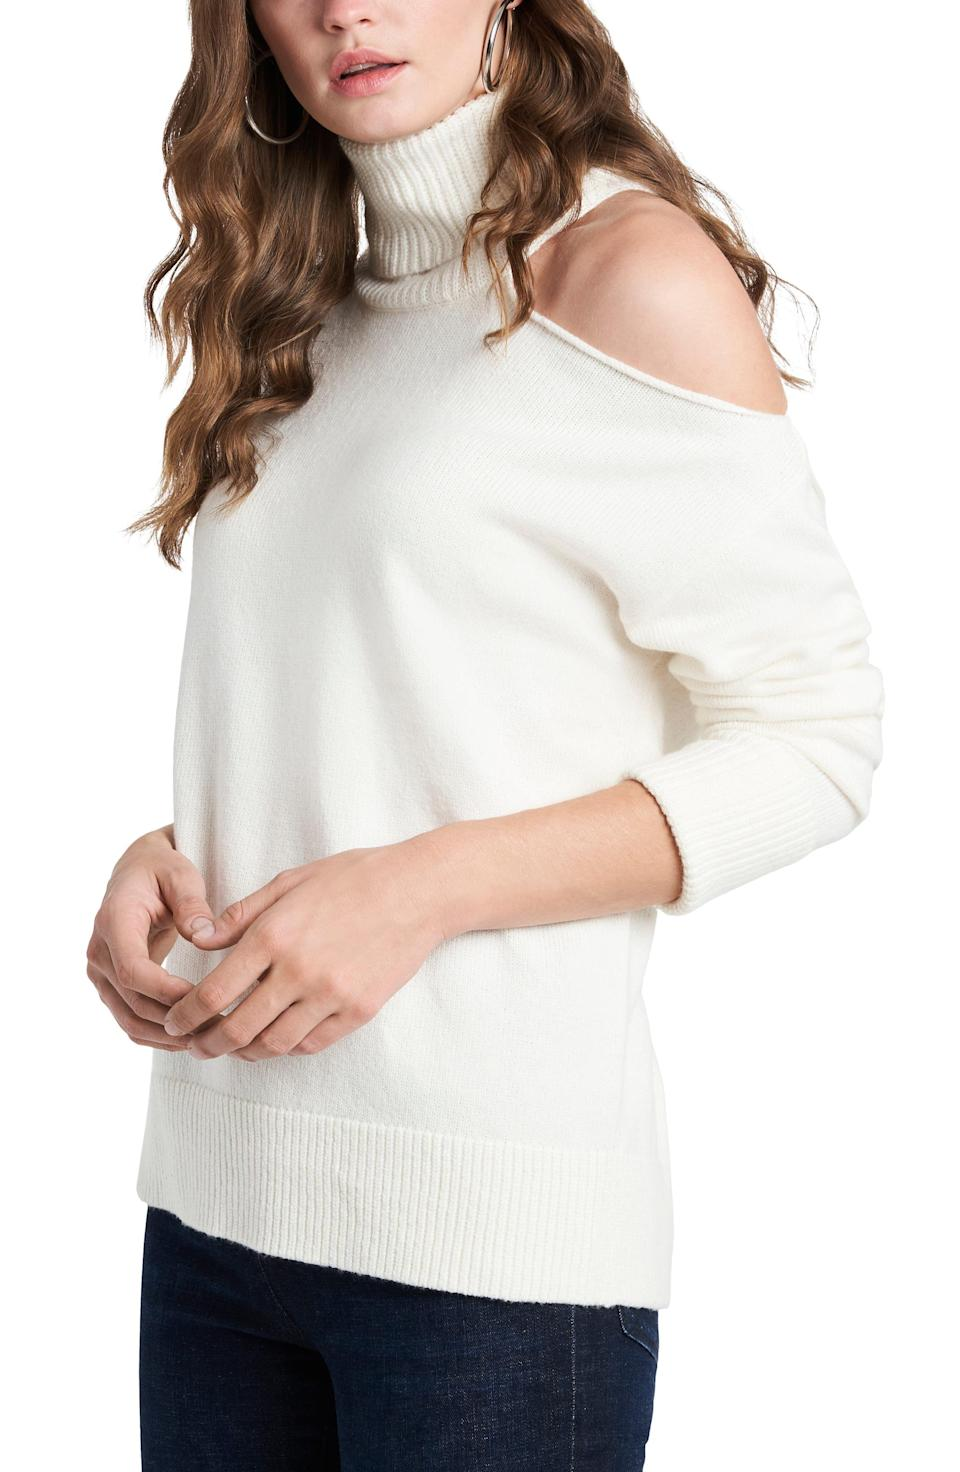 """<p><strong>1.STATE</strong></p><p>nordstrom.com</p><p><strong>$79.00</strong></p><p><a href=""""https://go.redirectingat.com?id=74968X1596630&url=https%3A%2F%2Fwww.nordstrom.com%2Fs%2F1-state-cutout-shoulder-turtleneck-sweater%2F5727530&sref=https%3A%2F%2Fwww.womenshealthmag.com%2Flife%2Fg37511825%2Fbest-fall-sweaters%2F"""" rel=""""nofollow noopener"""" target=""""_blank"""" data-ylk=""""slk:Shop Now"""" class=""""link rapid-noclick-resp"""">Shop Now</a></p><p>Every turtleneck lover <em>needs</em> a sweater like this. The shoulder cutout is a great way to mix up those simple essentials in your wardrobe.</p>"""